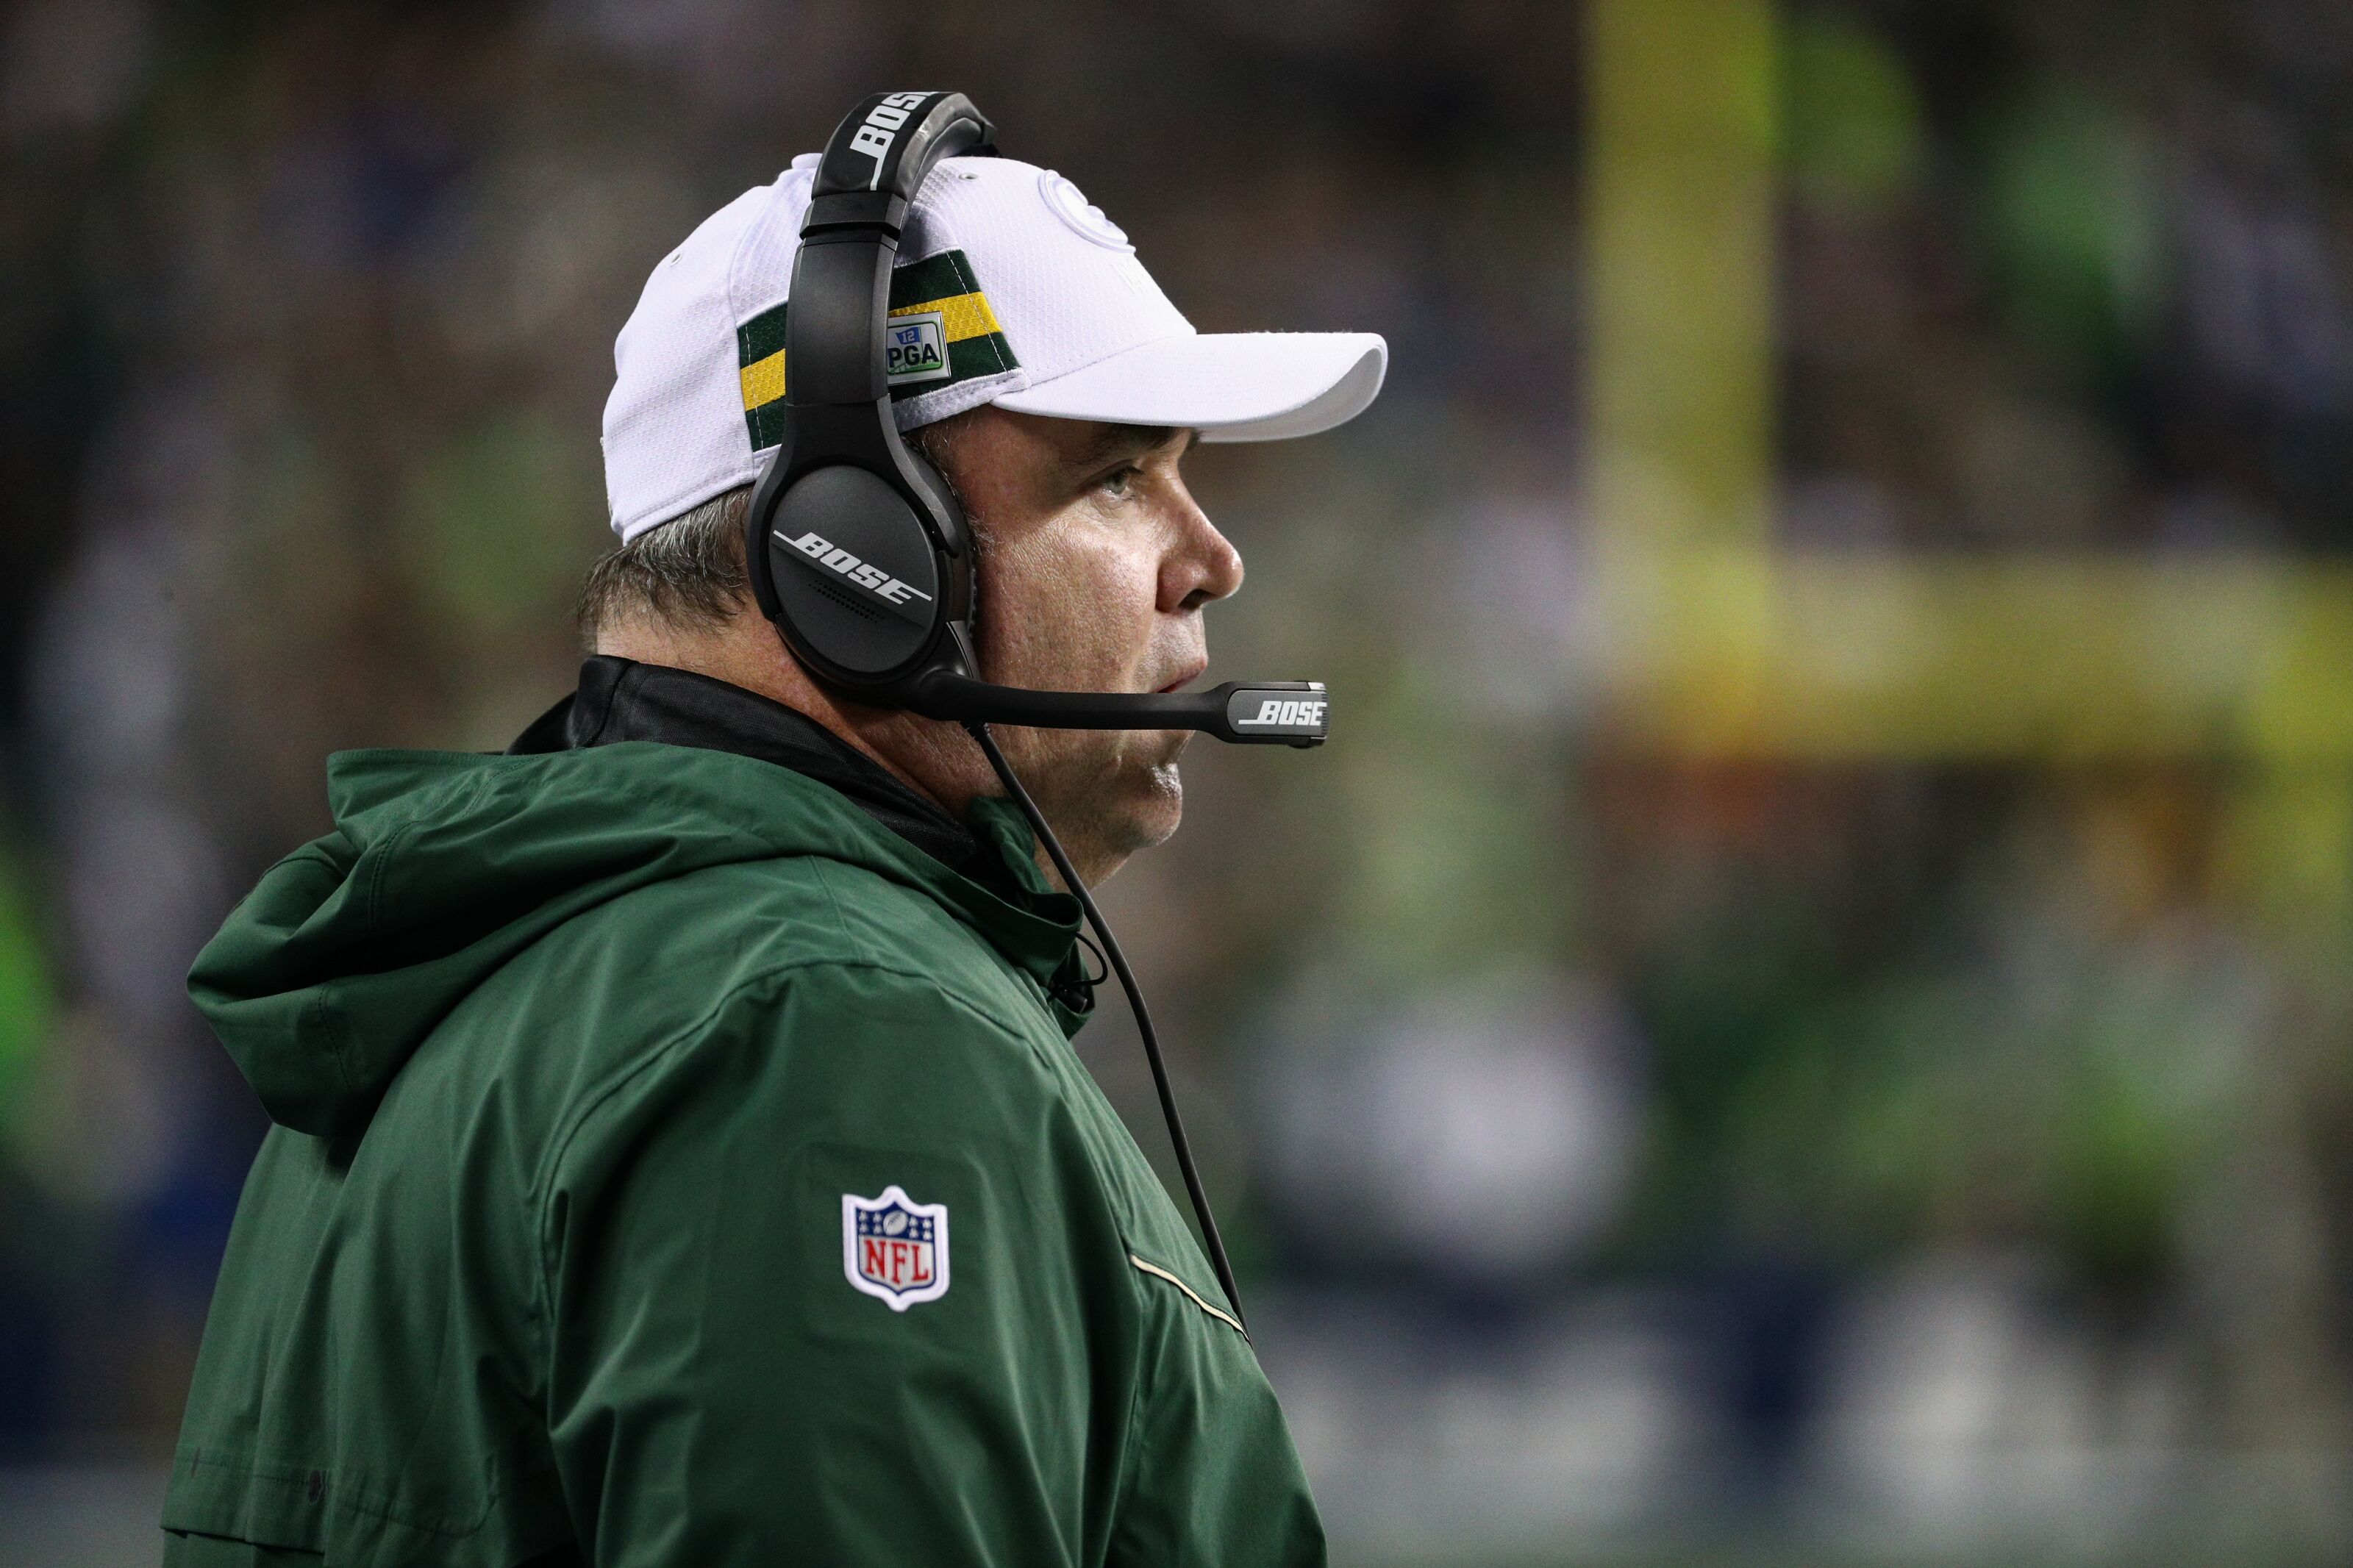 SEATTLE, WA - NOVEMBER 15: Head coach Mike McCarthy of the Green Bay Packers watches the action in the first quarter against the Seattle Seahawks at CenturyLink Field on November 15, 2018 in Seattle, Washington. (Photo by Abbie Parr/Getty Images)